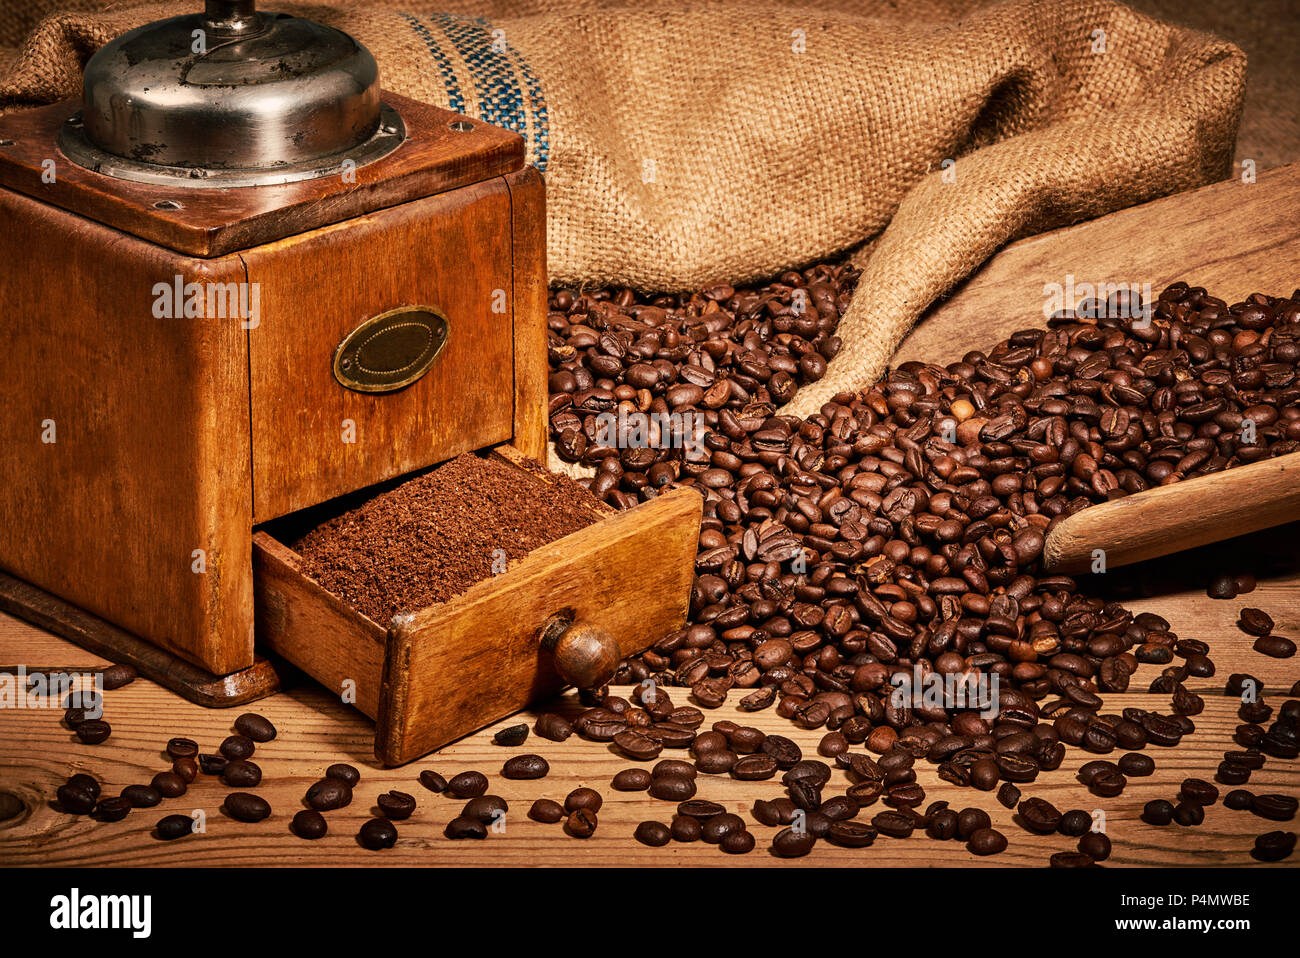 Coffee with old coffee grinder and beans on wooden table - Stock Image